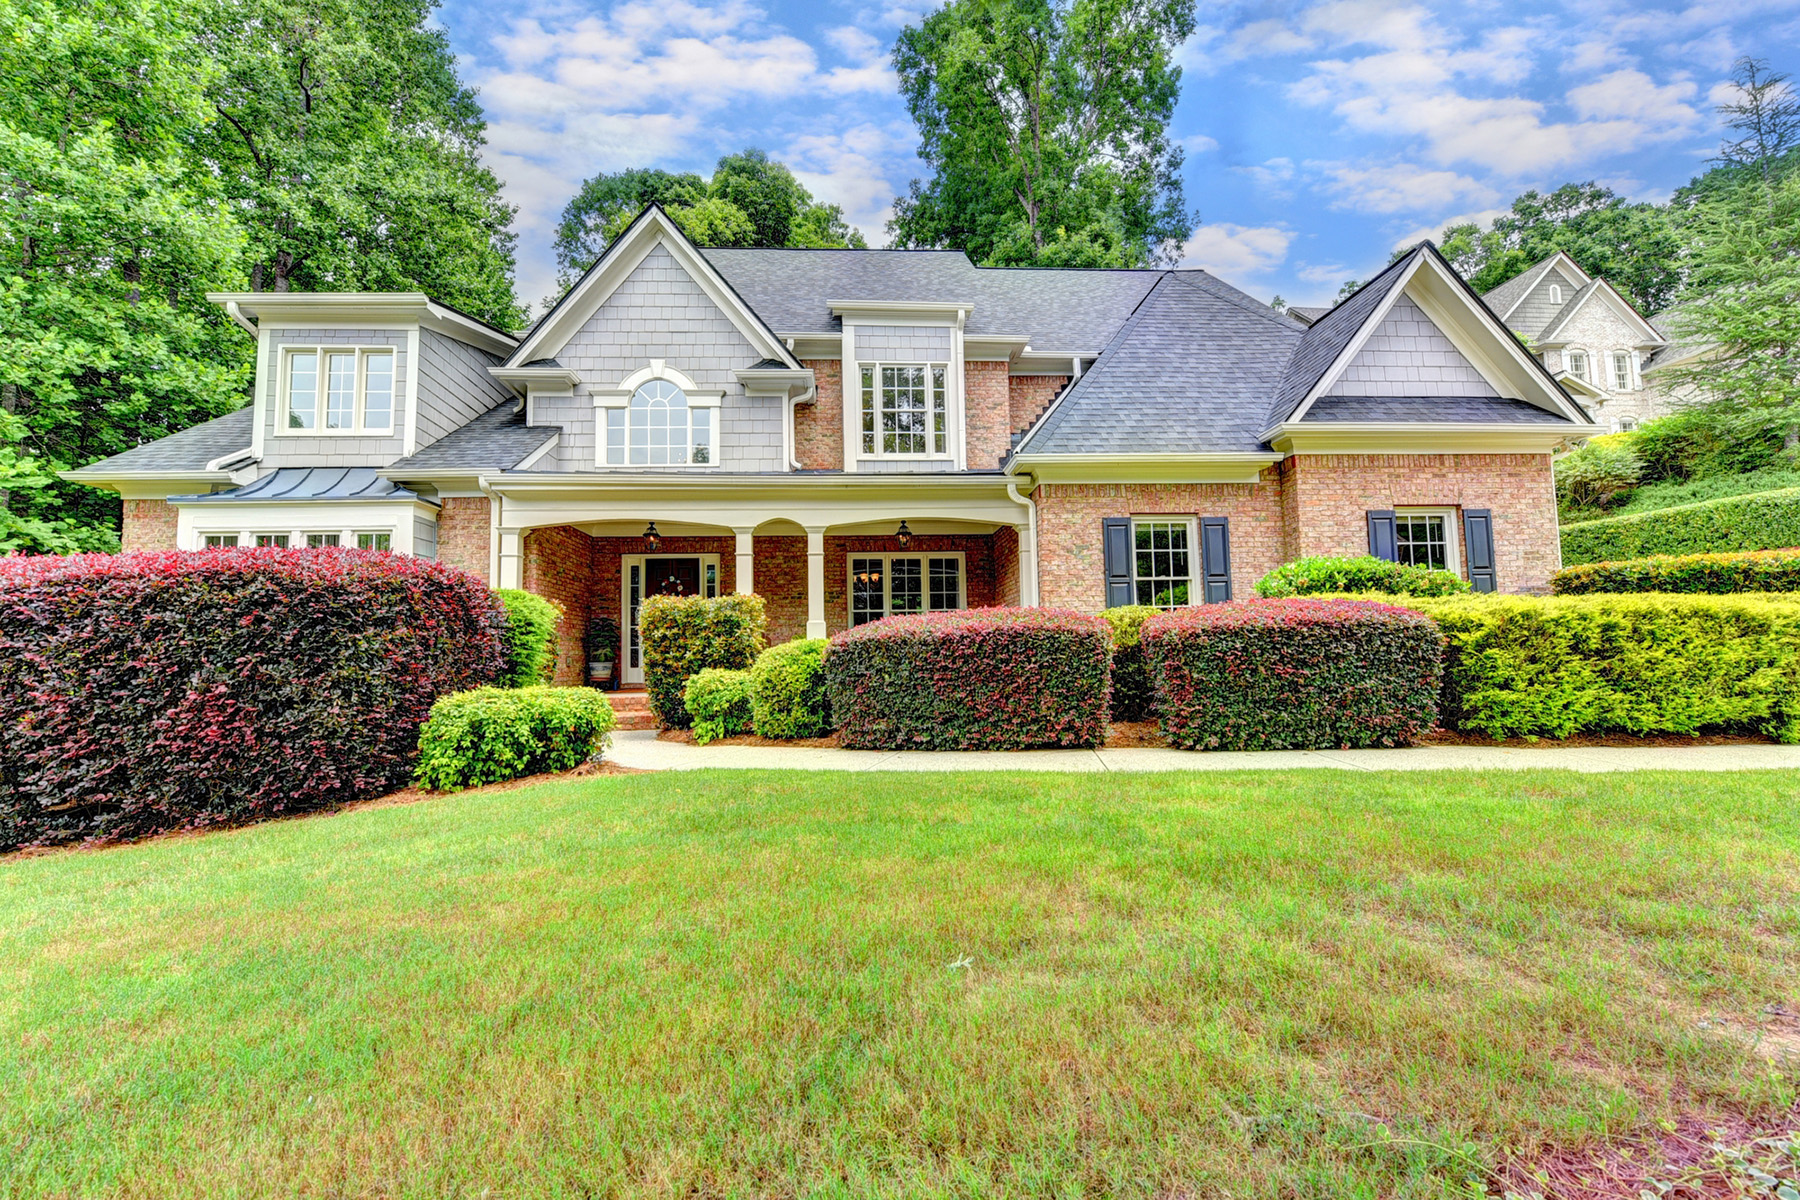 Property のために 売買 アット Meticulously Maintained Open Concept Home With Scenic Wooded Backyard 5035 Huntwood Way, Roswell, ジョージア 30075 アメリカ